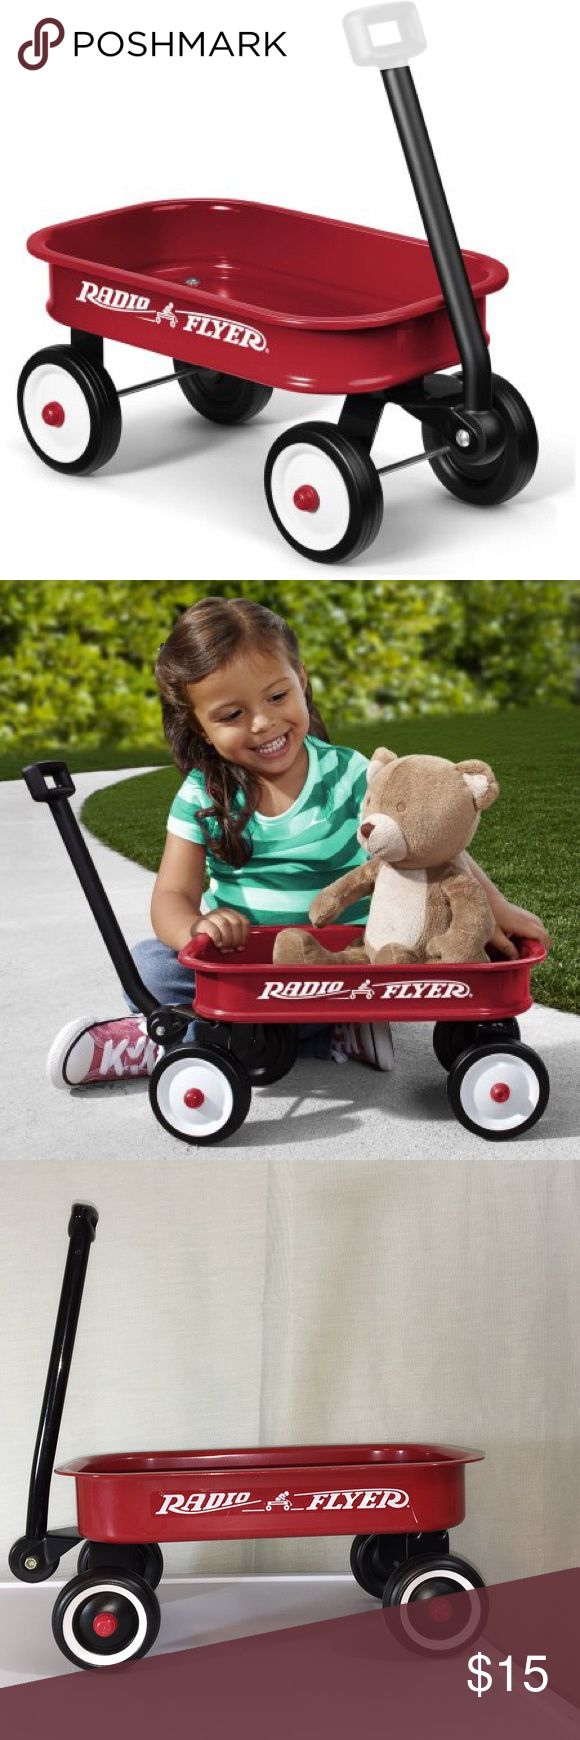 Small Radio Flyer Wagon A small radio flyer model that is perfect for children to play with! Like new condition! Radio Flyer Other